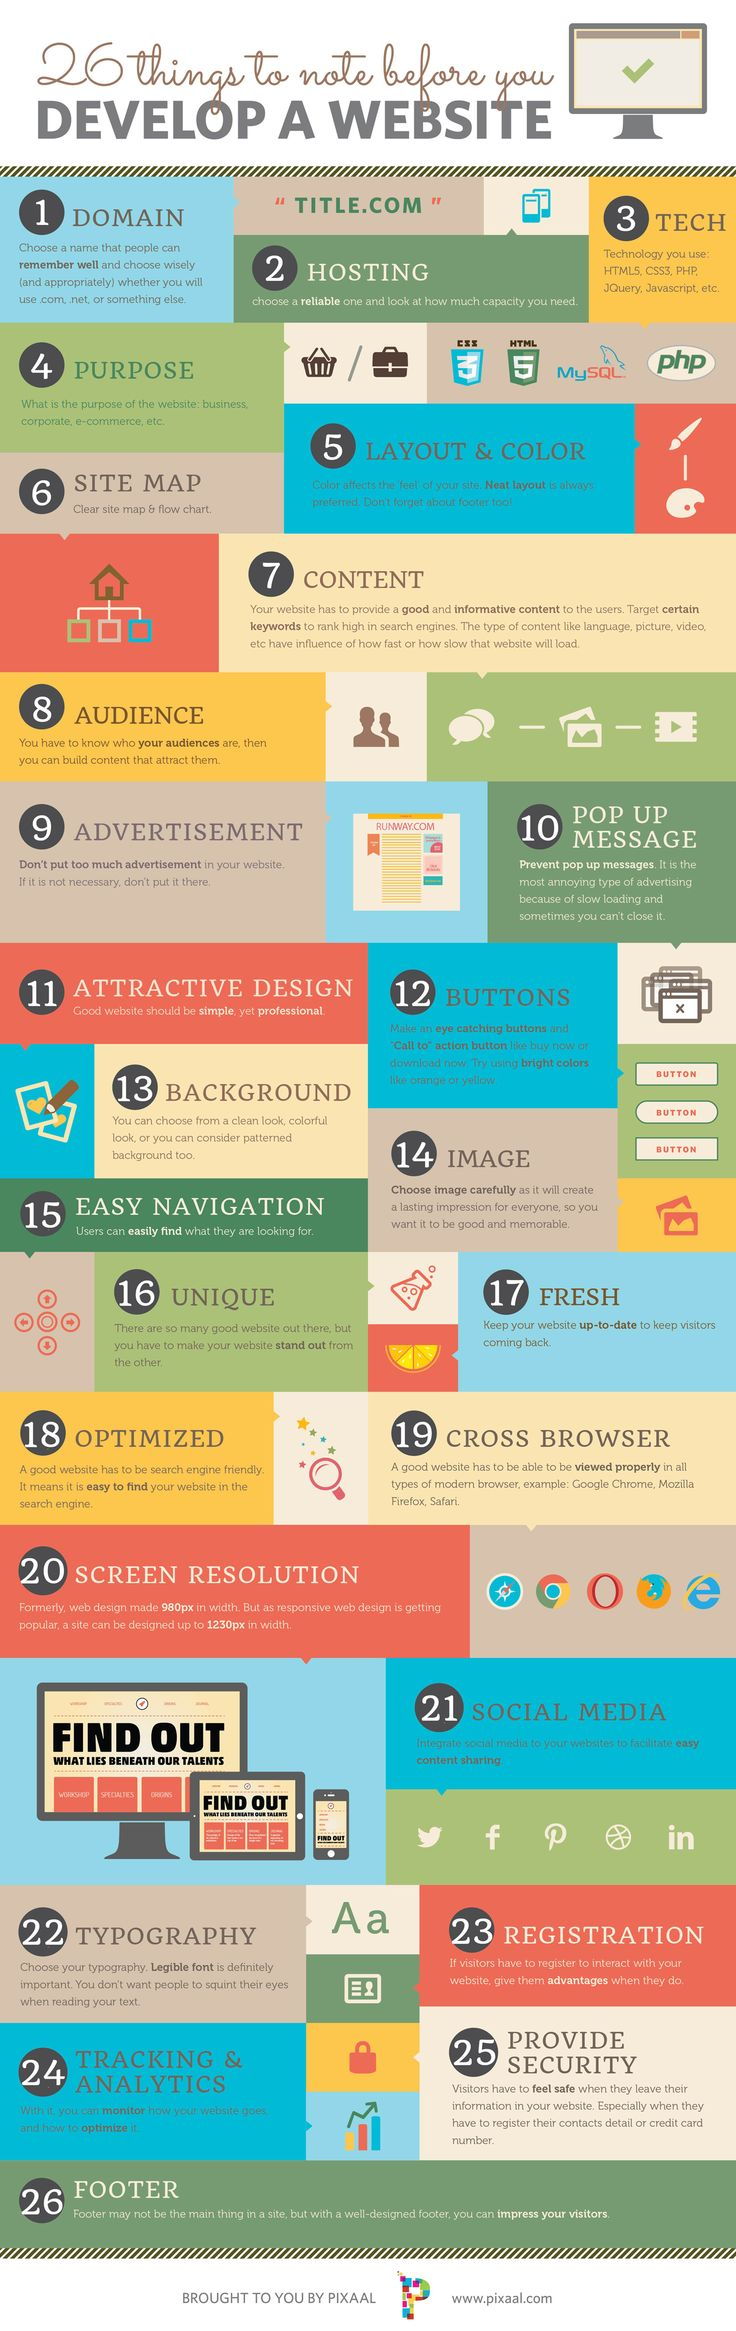 26 tips to design a website - #infographic #punt21